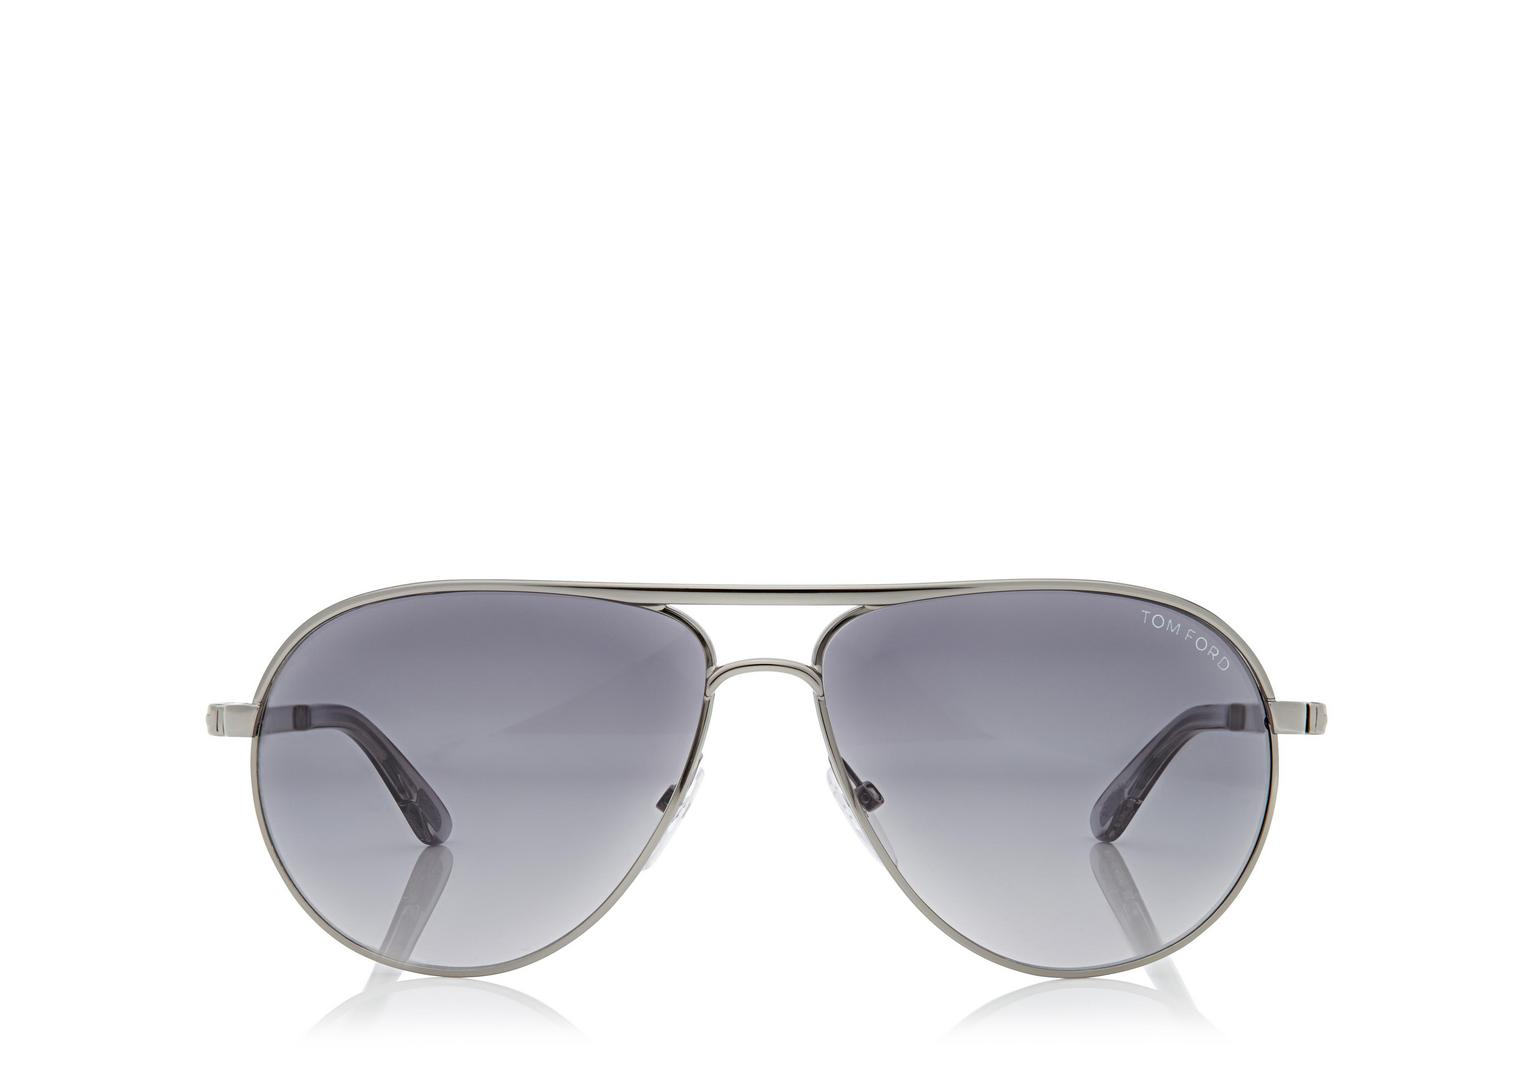 Marko Aviator Sunglasses